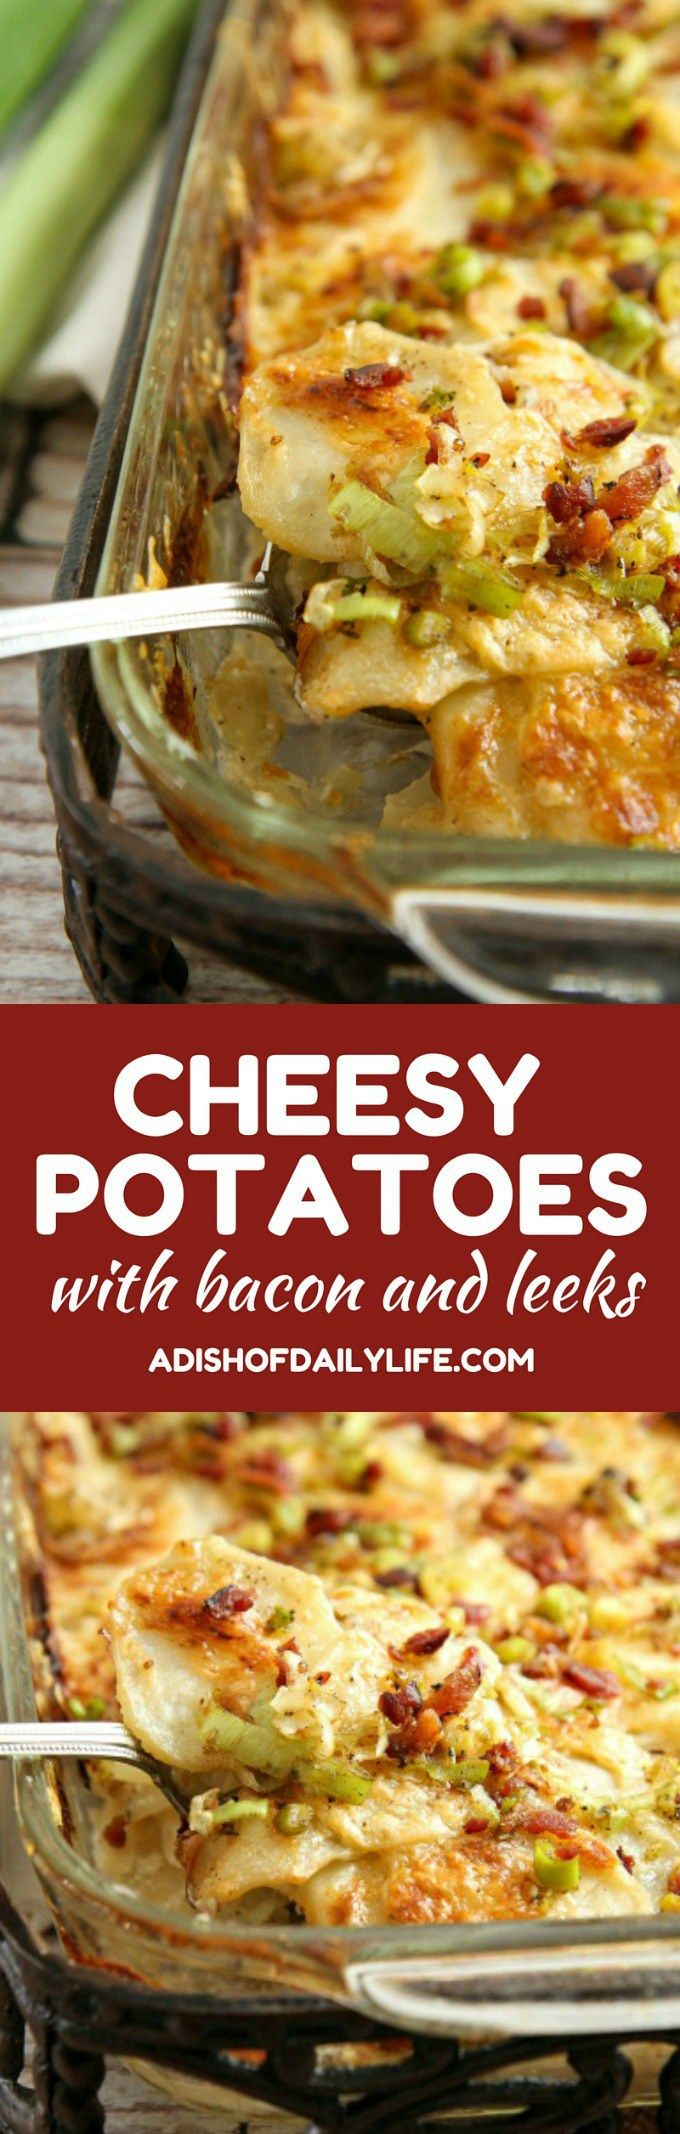 These Cheesy Potatoes with bacon and leeks are packed with creamy ...